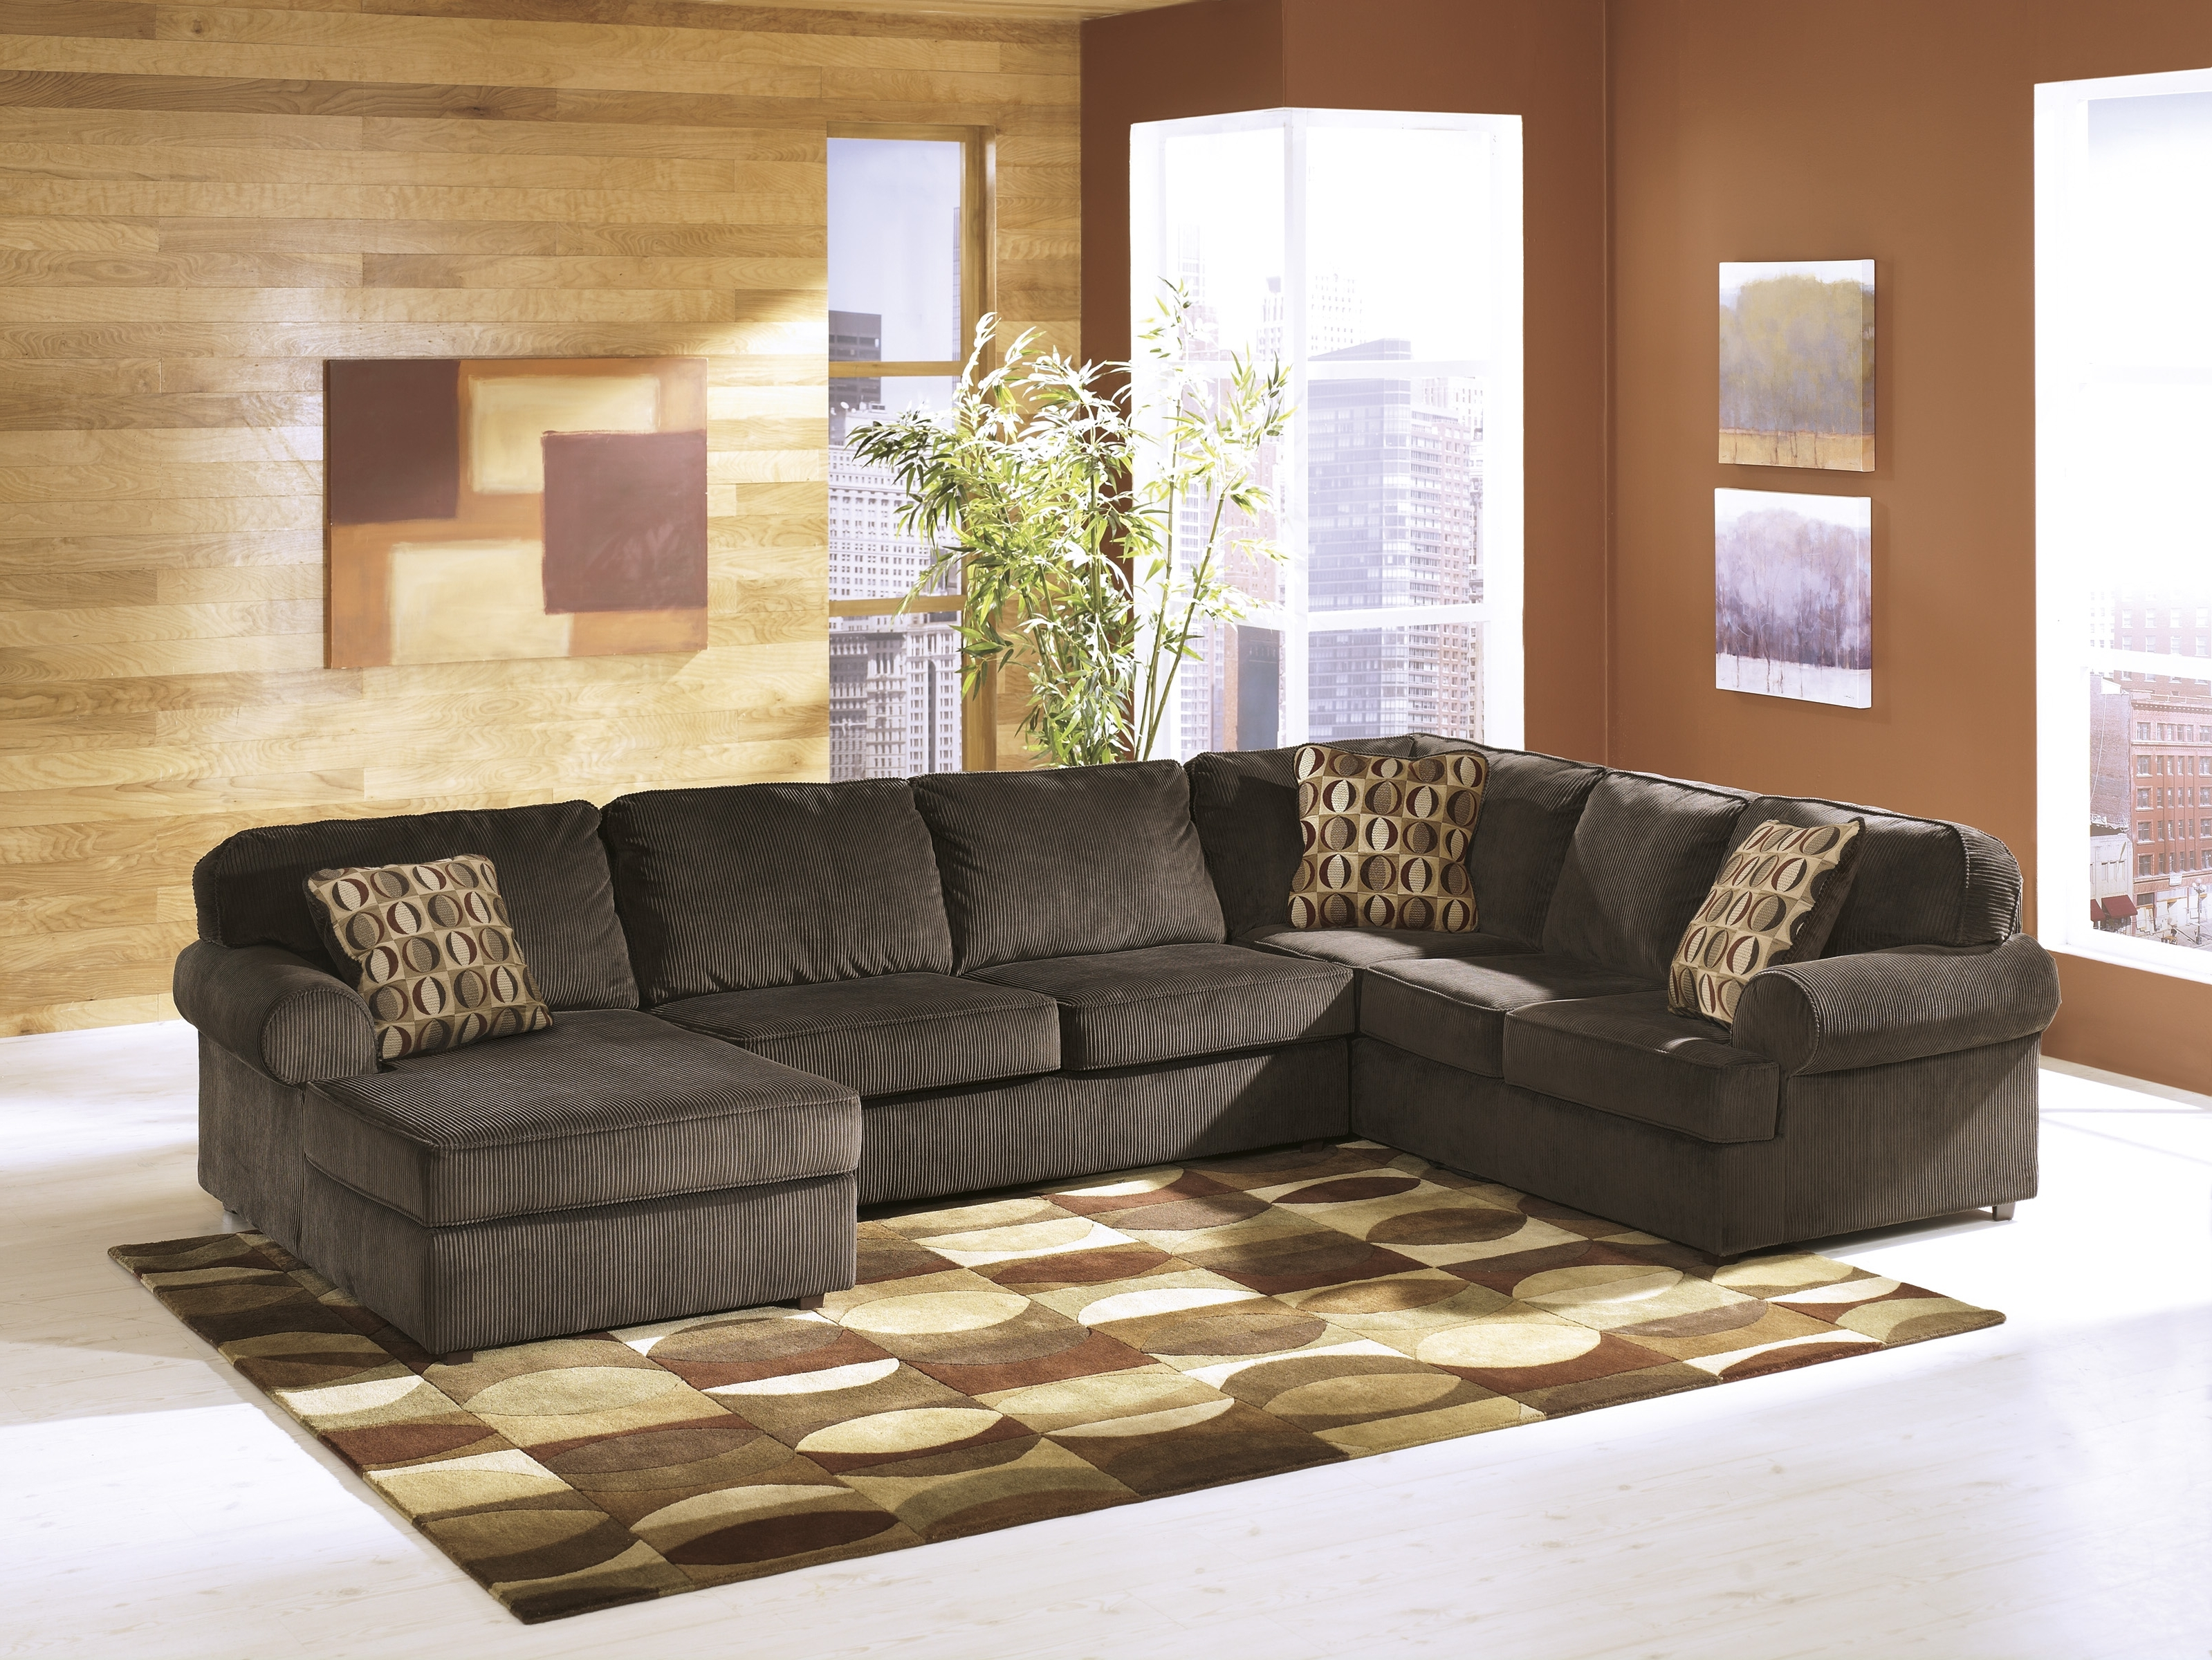 Most Recently Released Wichita Ks Sectional Sofas Throughout Excellent Ideas Easy Home Furniture Rental Tarlac Edmonton Wichita (View 8 of 15)